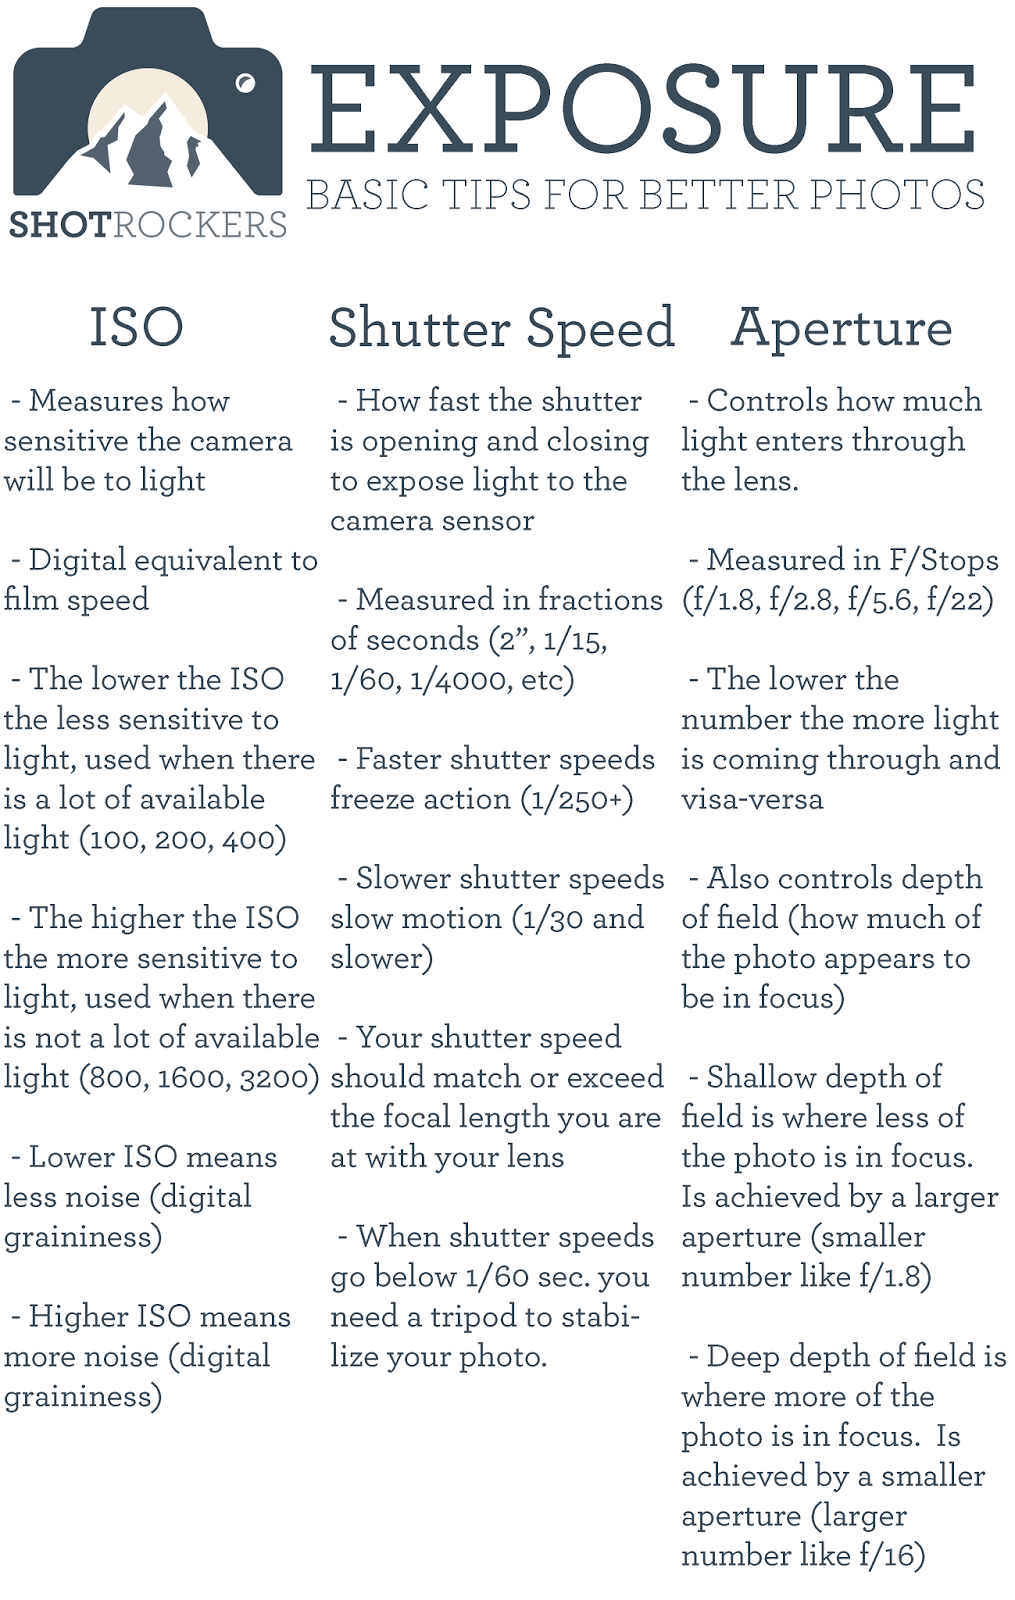 Better Exposure in 3 Infographics or Less: Basic Tips for Better Photos